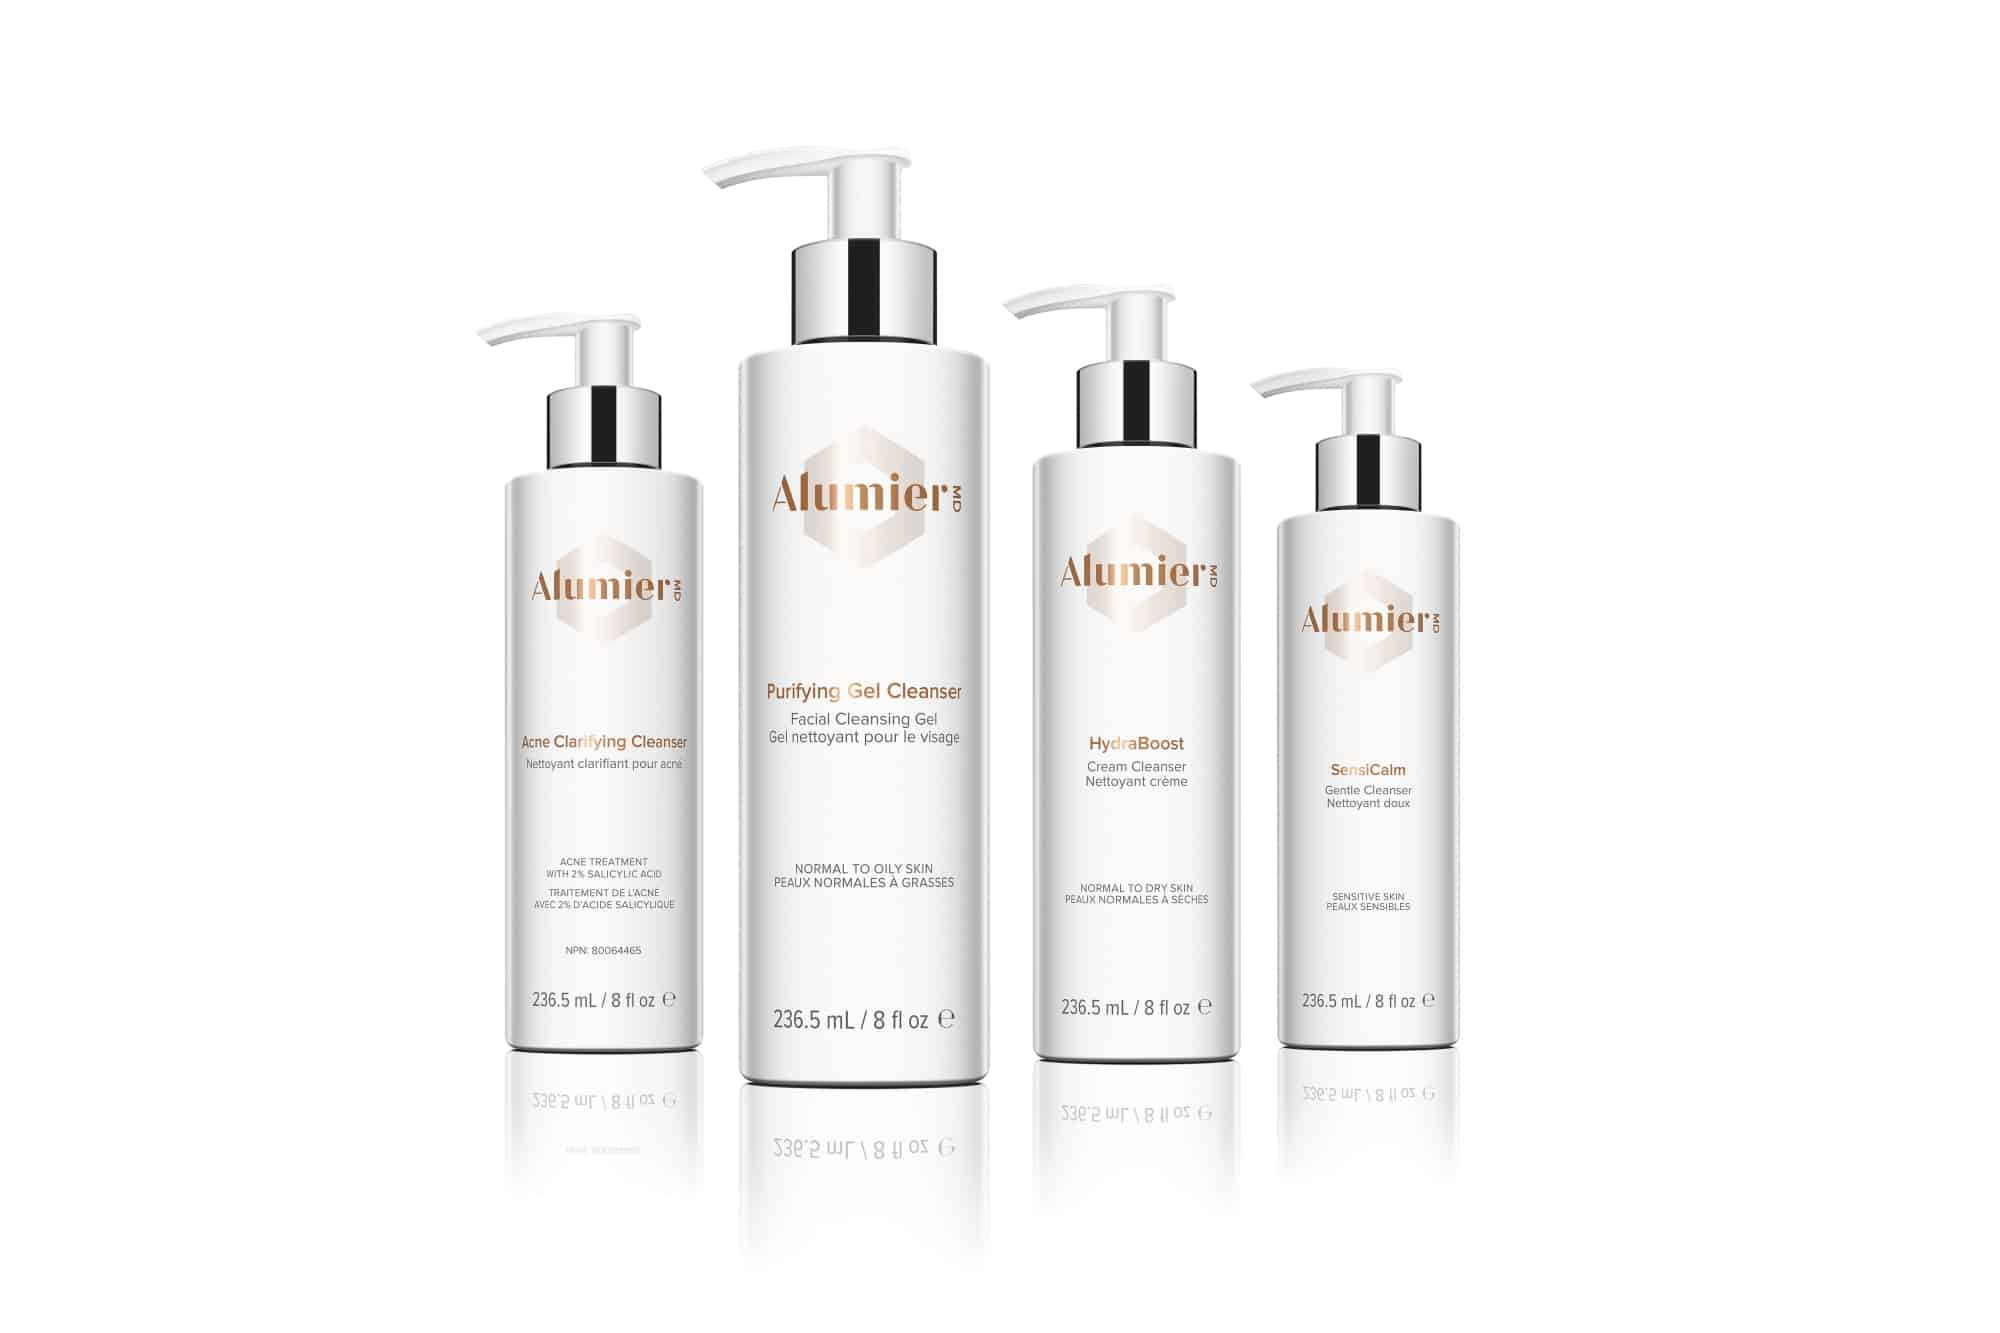 AlumierMD cleansers and scrubs